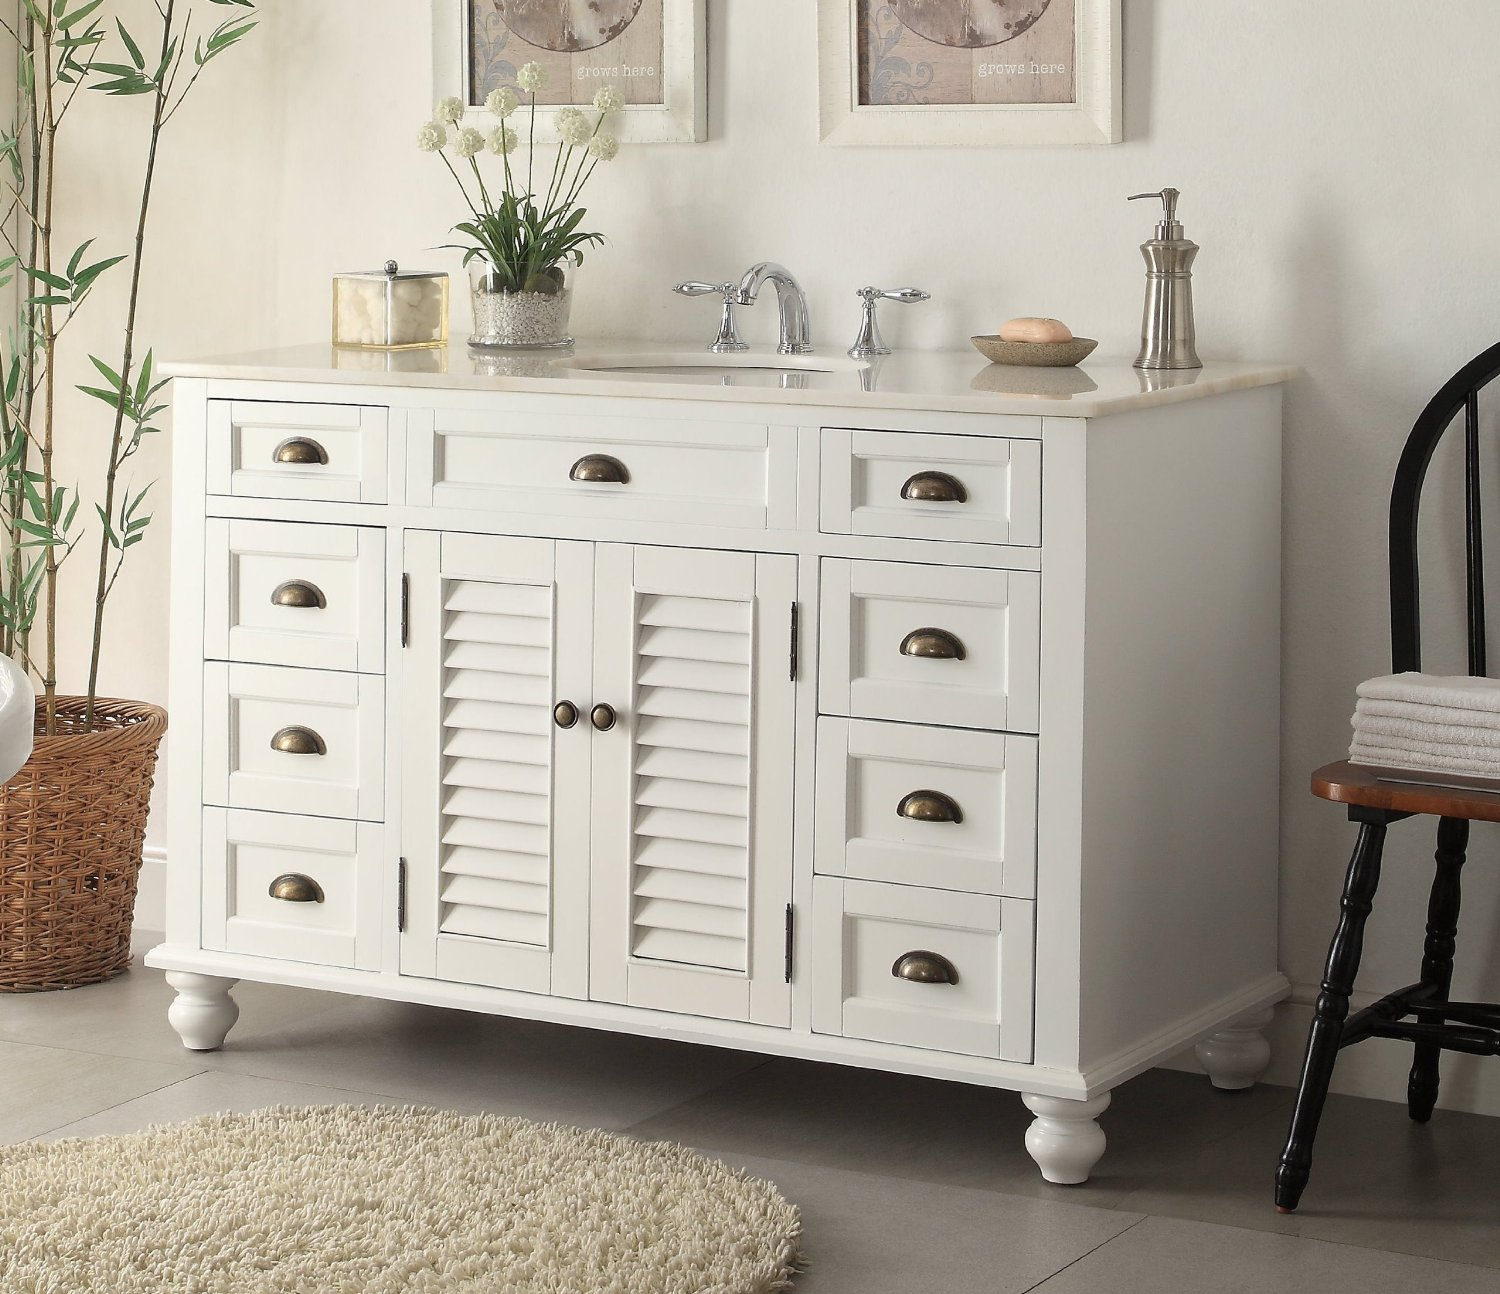 Adelina Inch Antique White Sink Bathroom Vanity Marble Counter Top